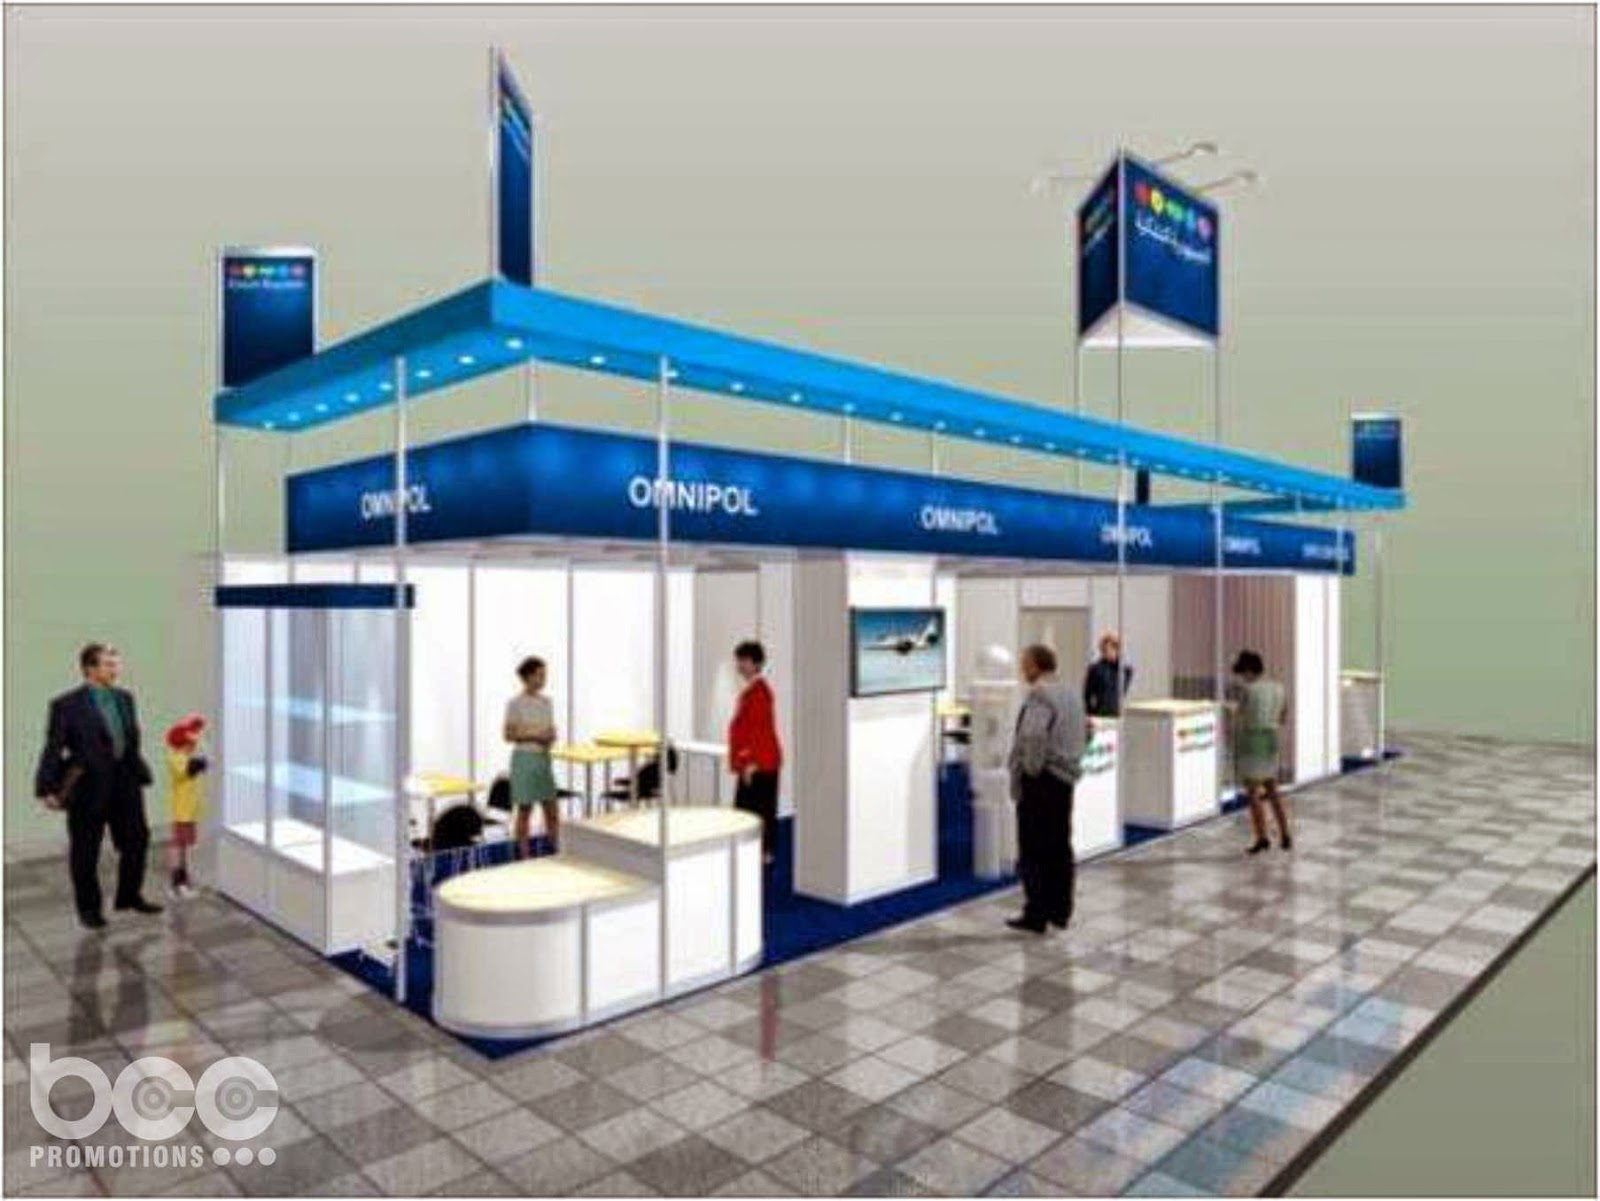 Exhibition Stall Design And Fabrication In : Stall design execution by brand care communications bcc marcom